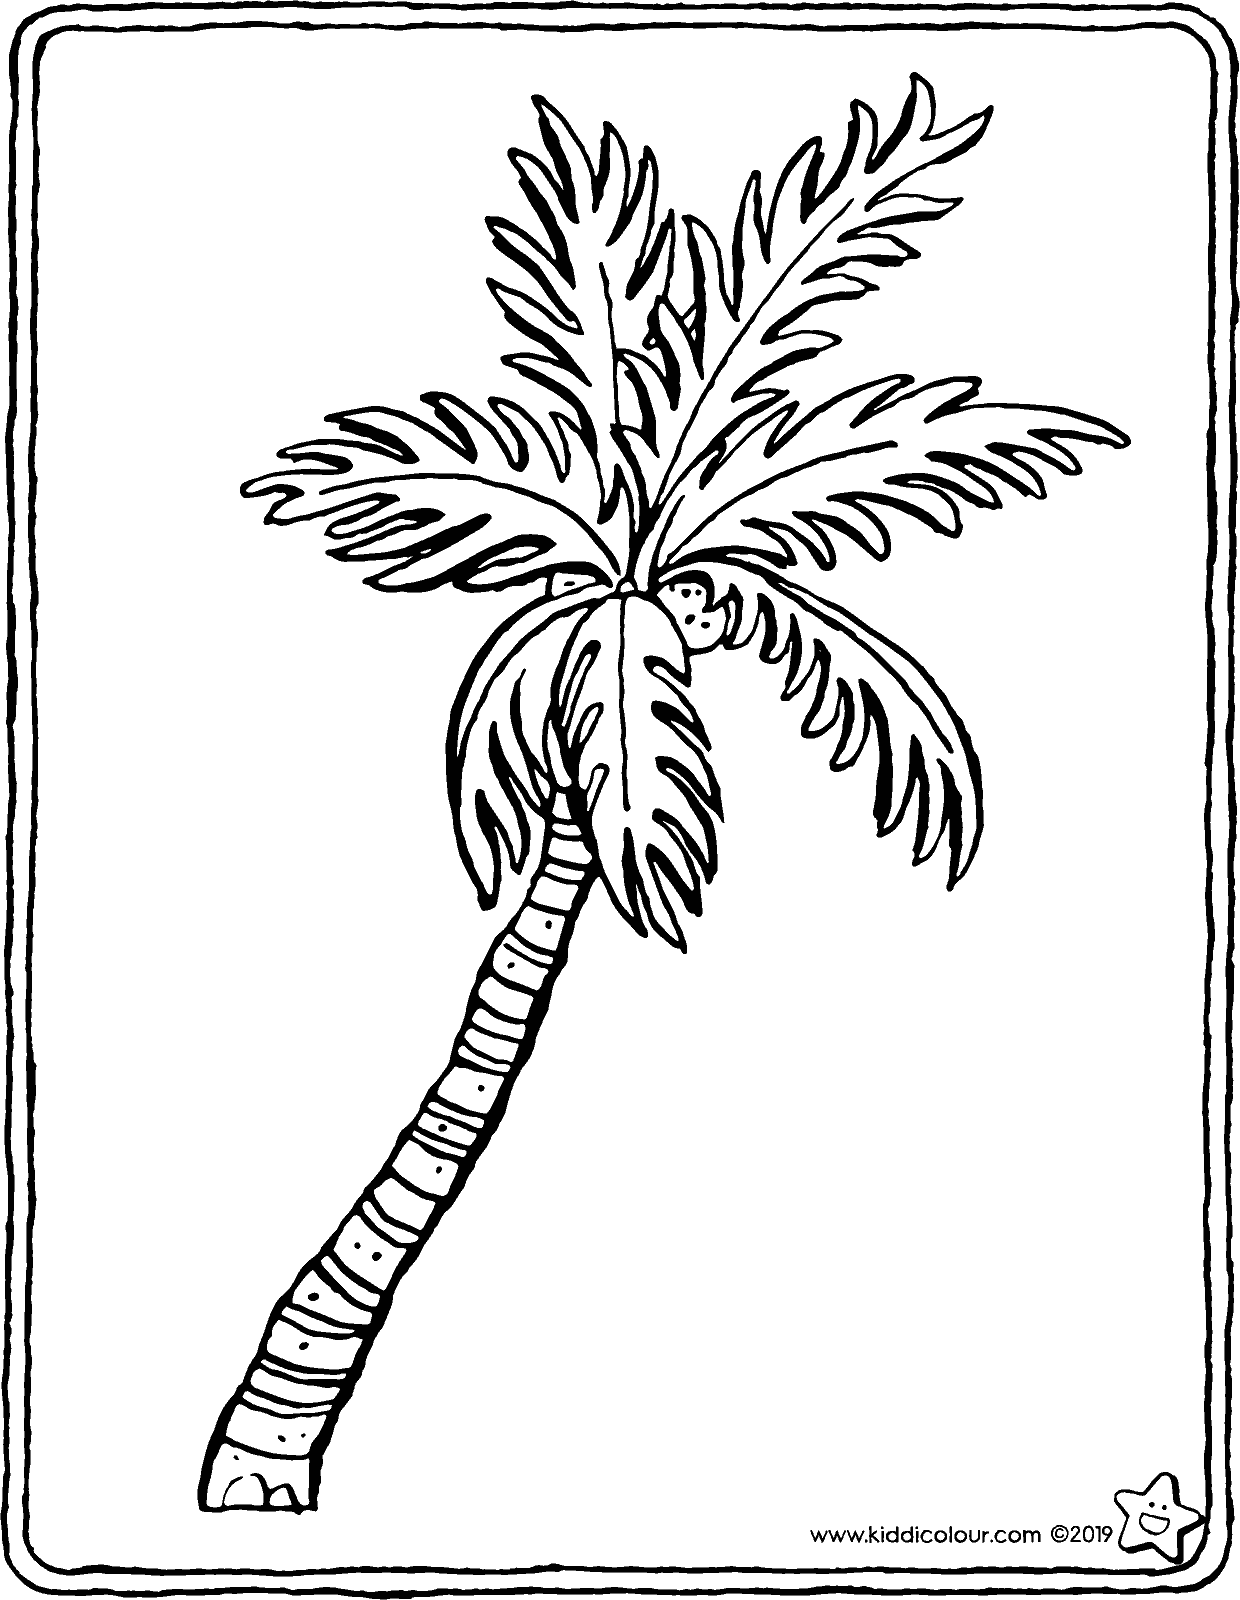 palm tree colouring page drawing picture 01V